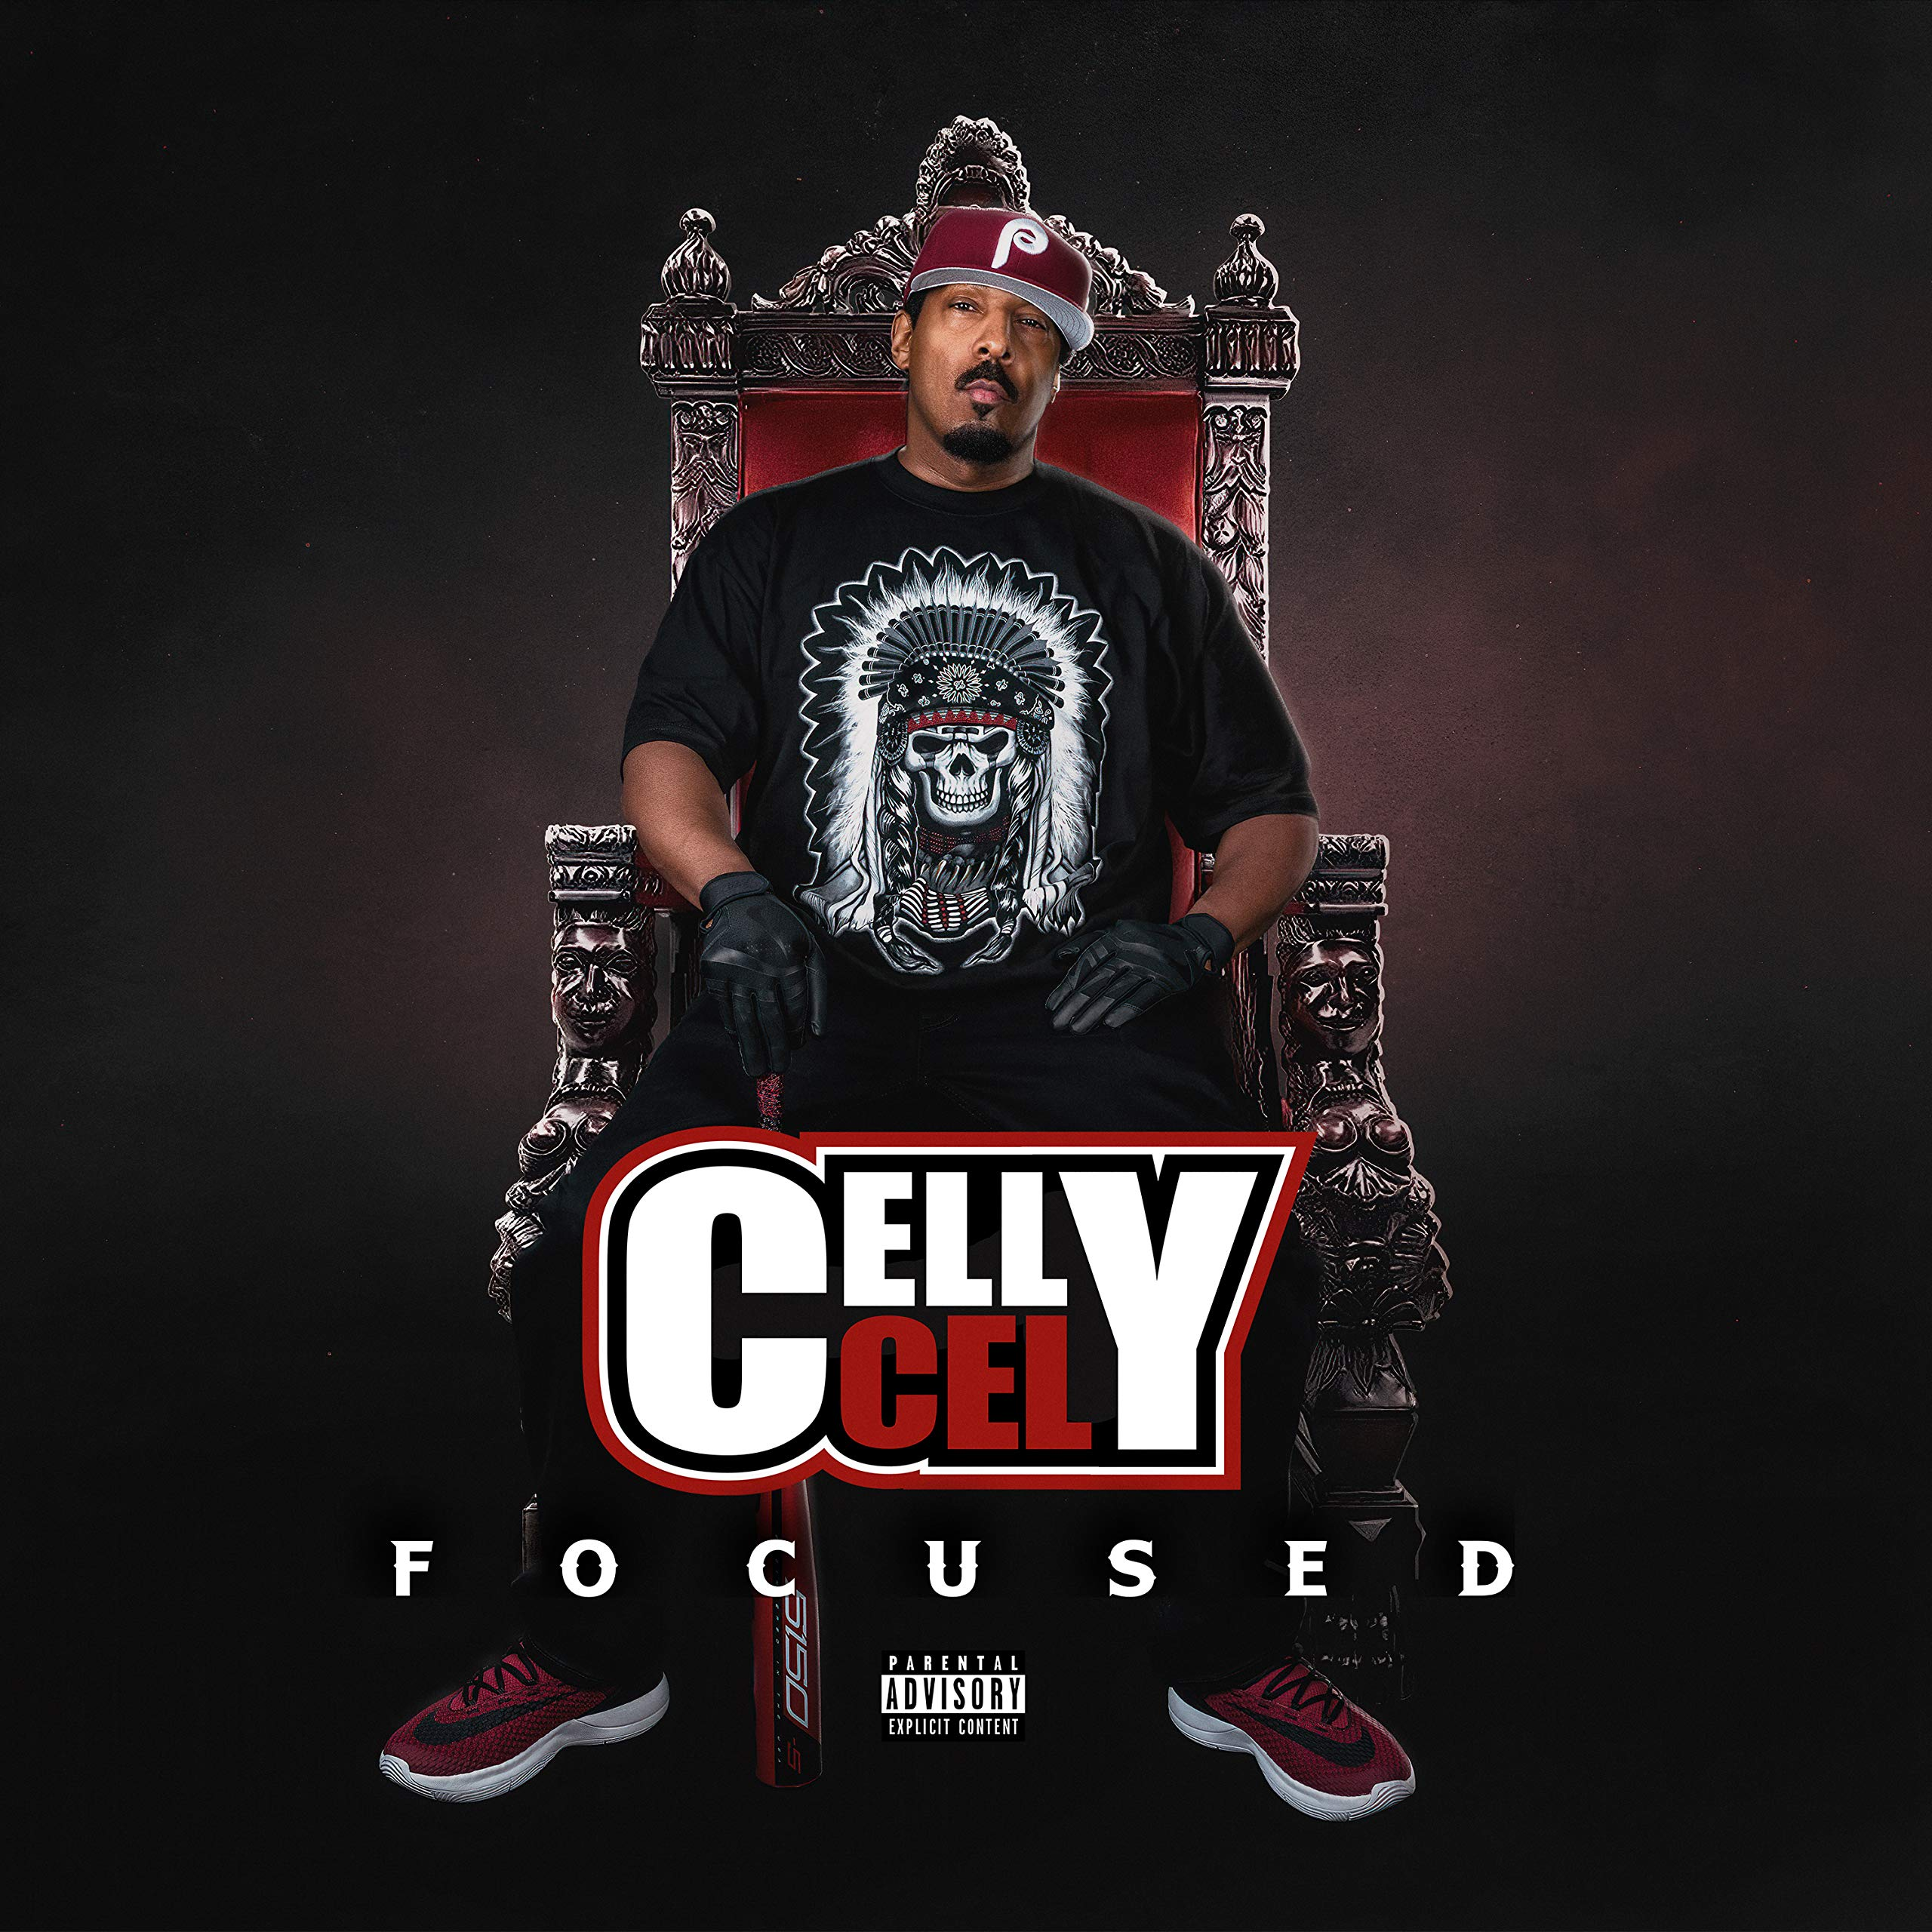 Celly Cel - Focused (2020) [FLAC] Download